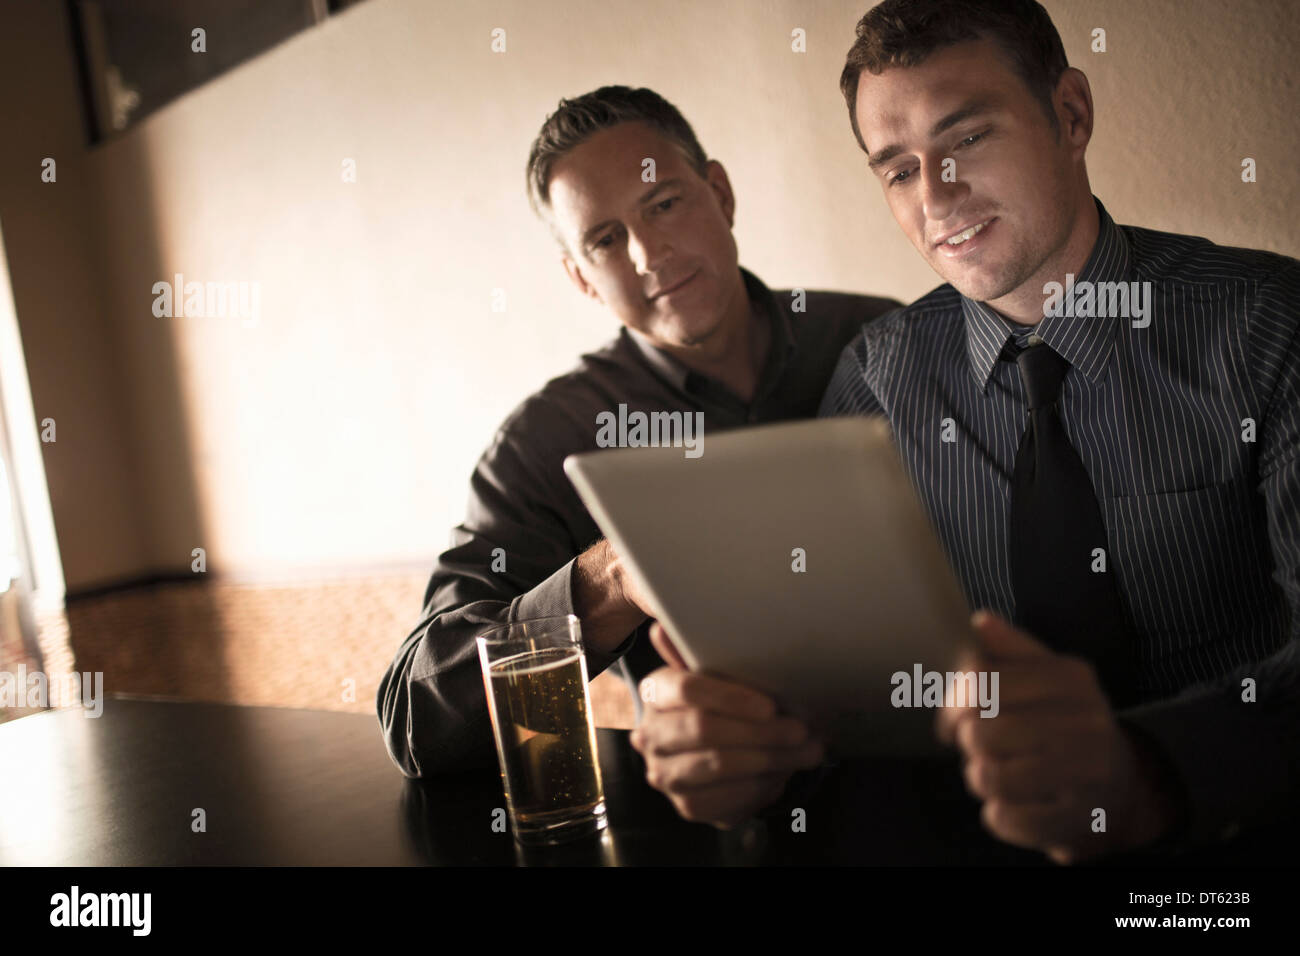 Two business colleagues looking at digital tablet in wine bar - Stock Image